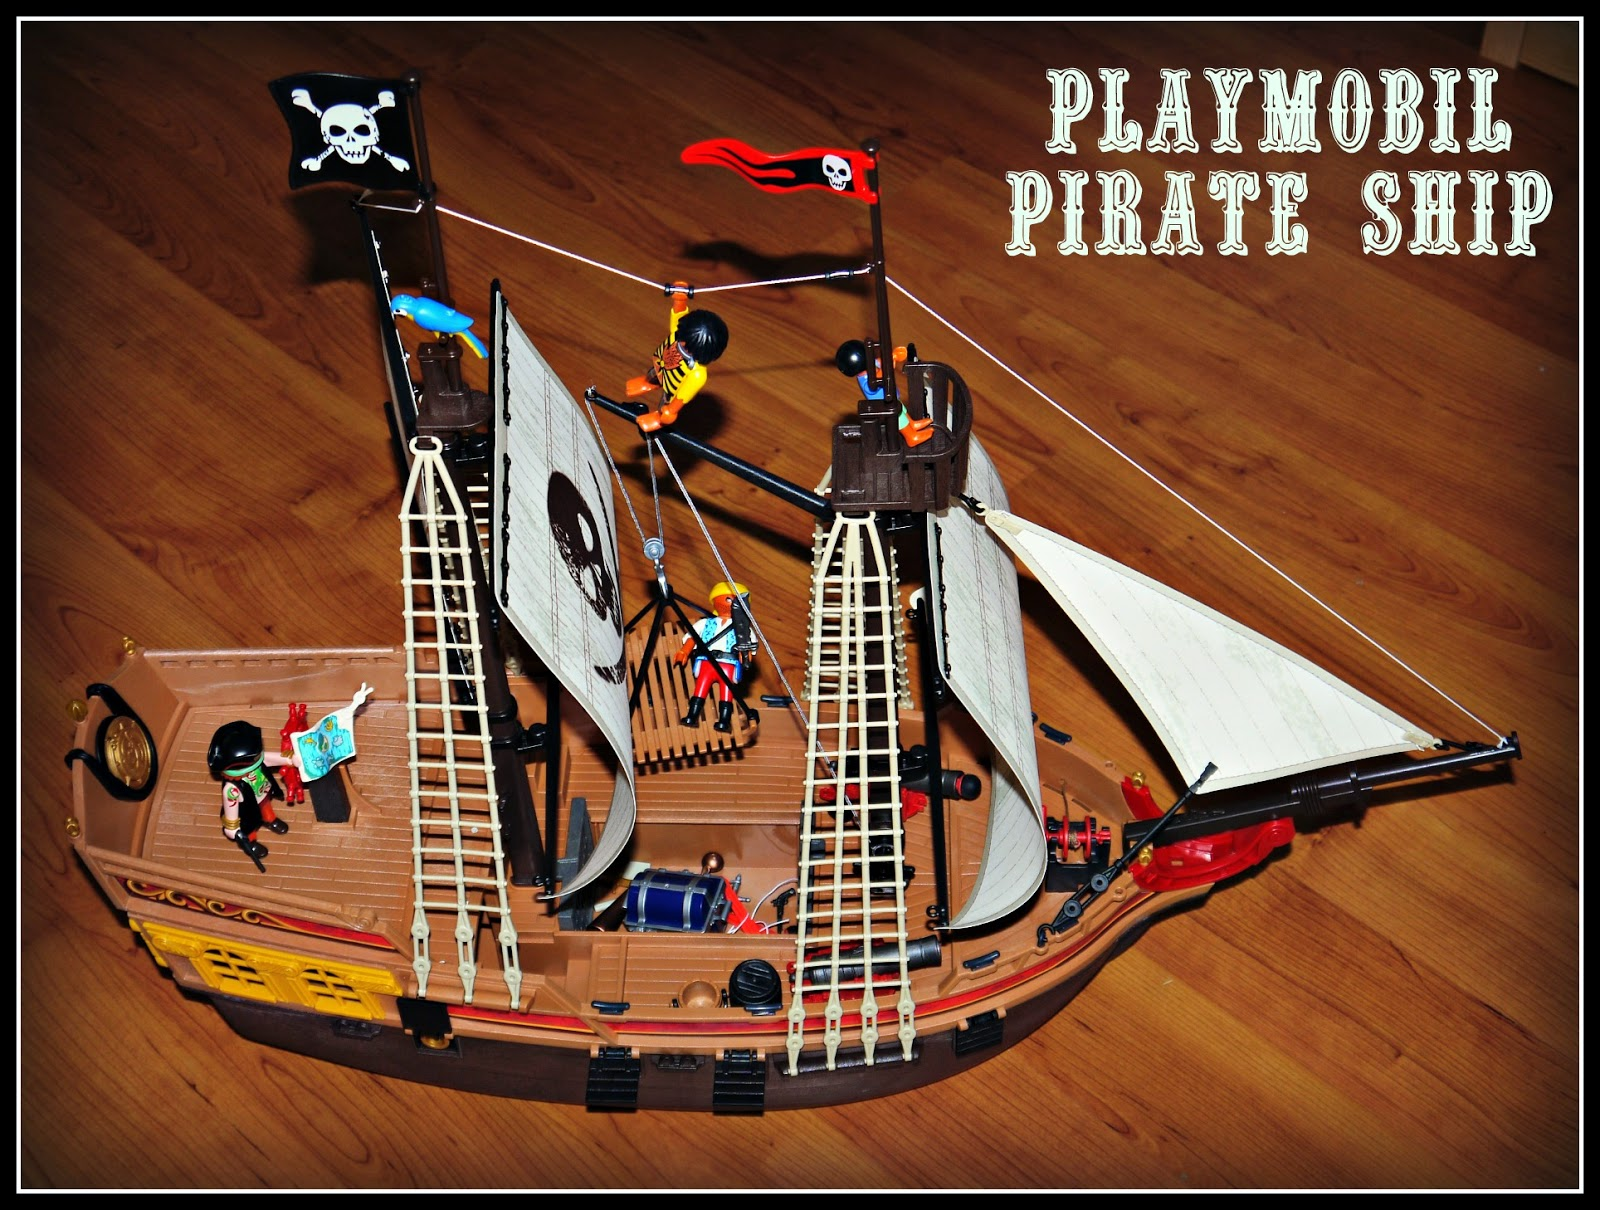 Playmobil, pirates